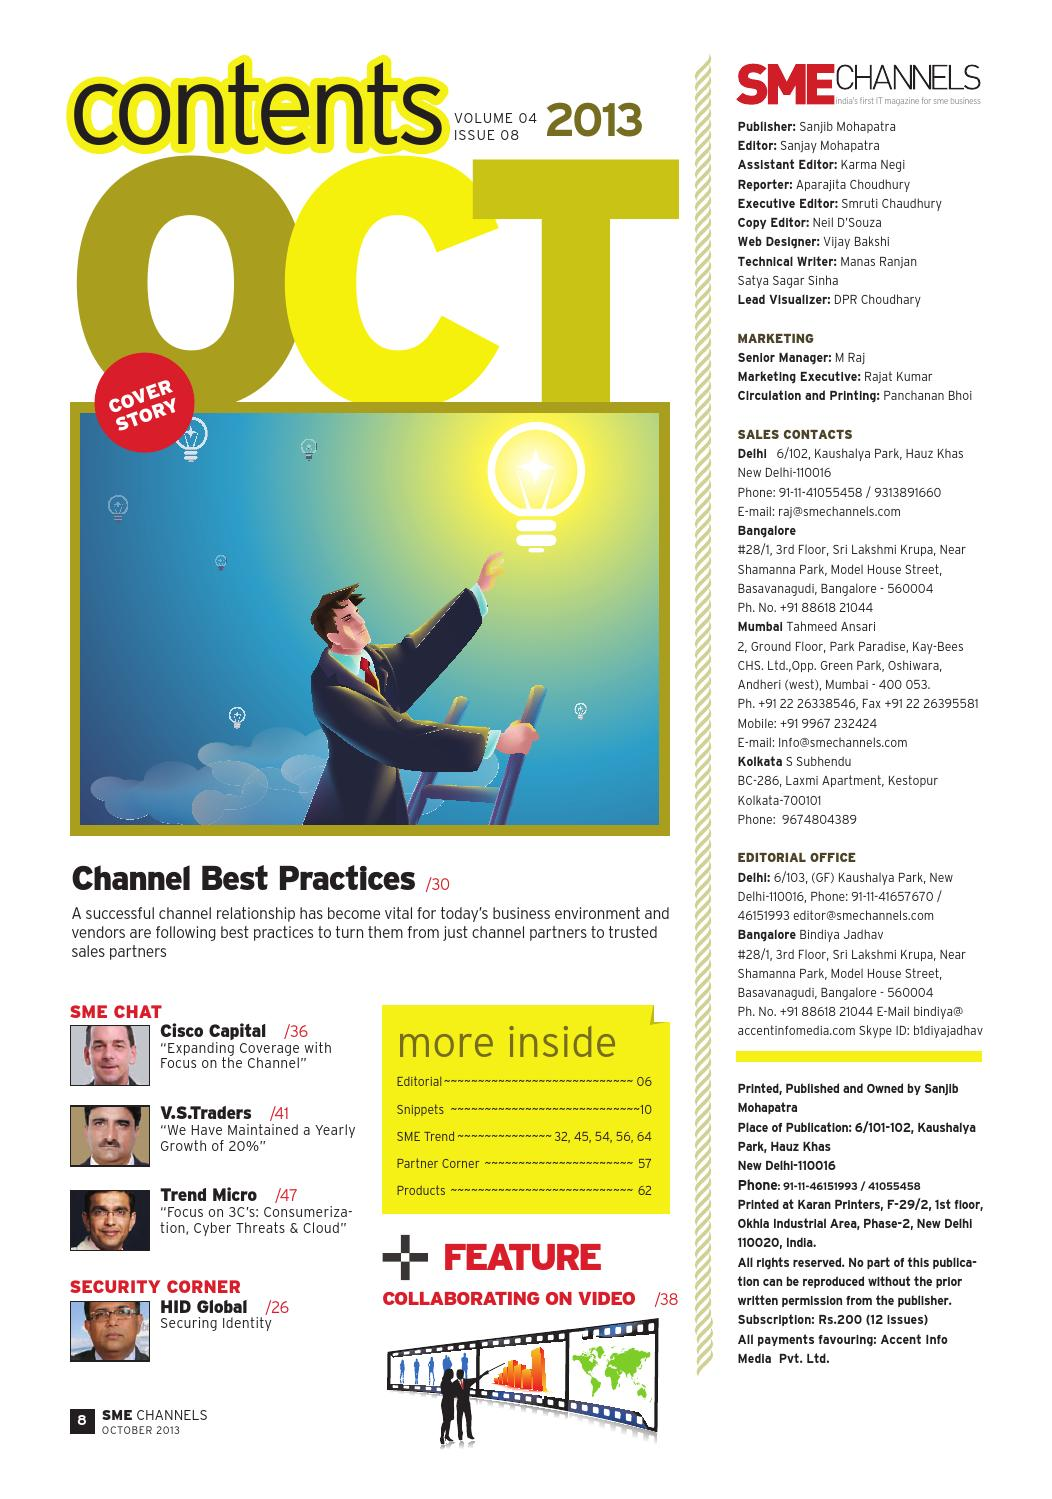 Sme channels october 13 by SME Channels - issuu